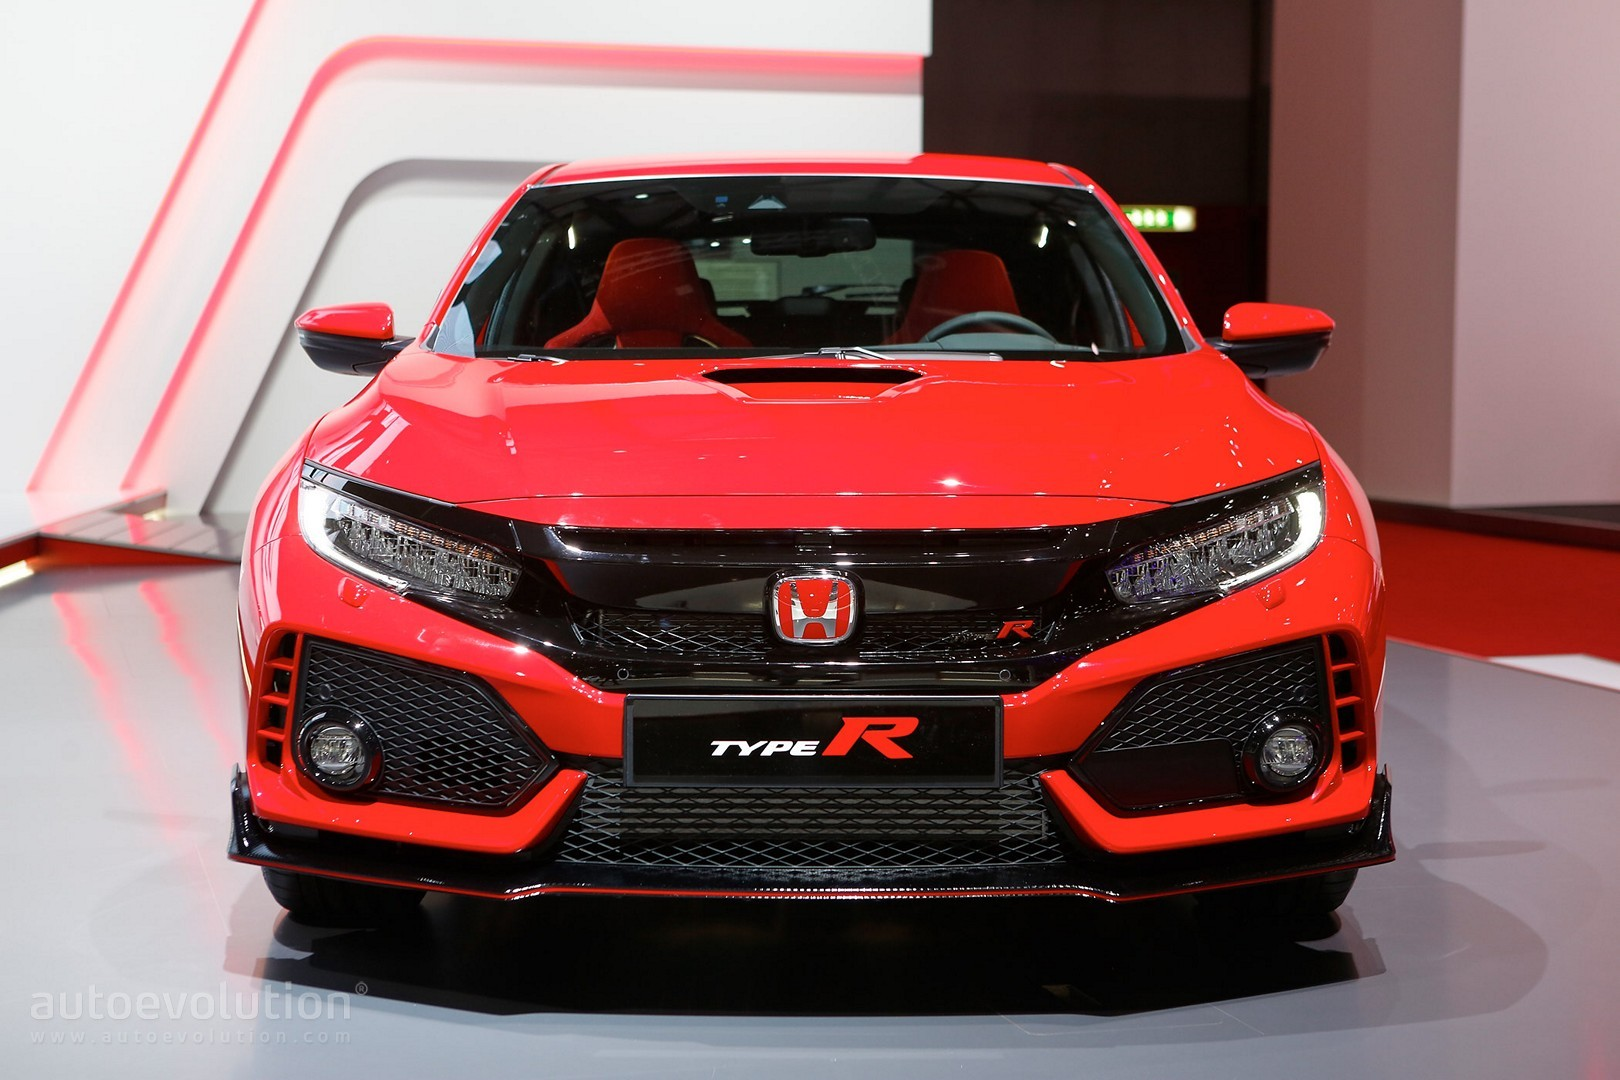 Honda To Debut U.S.-Spec FK8 Civic Type R At 2017 New York Auto Show - autoevolution